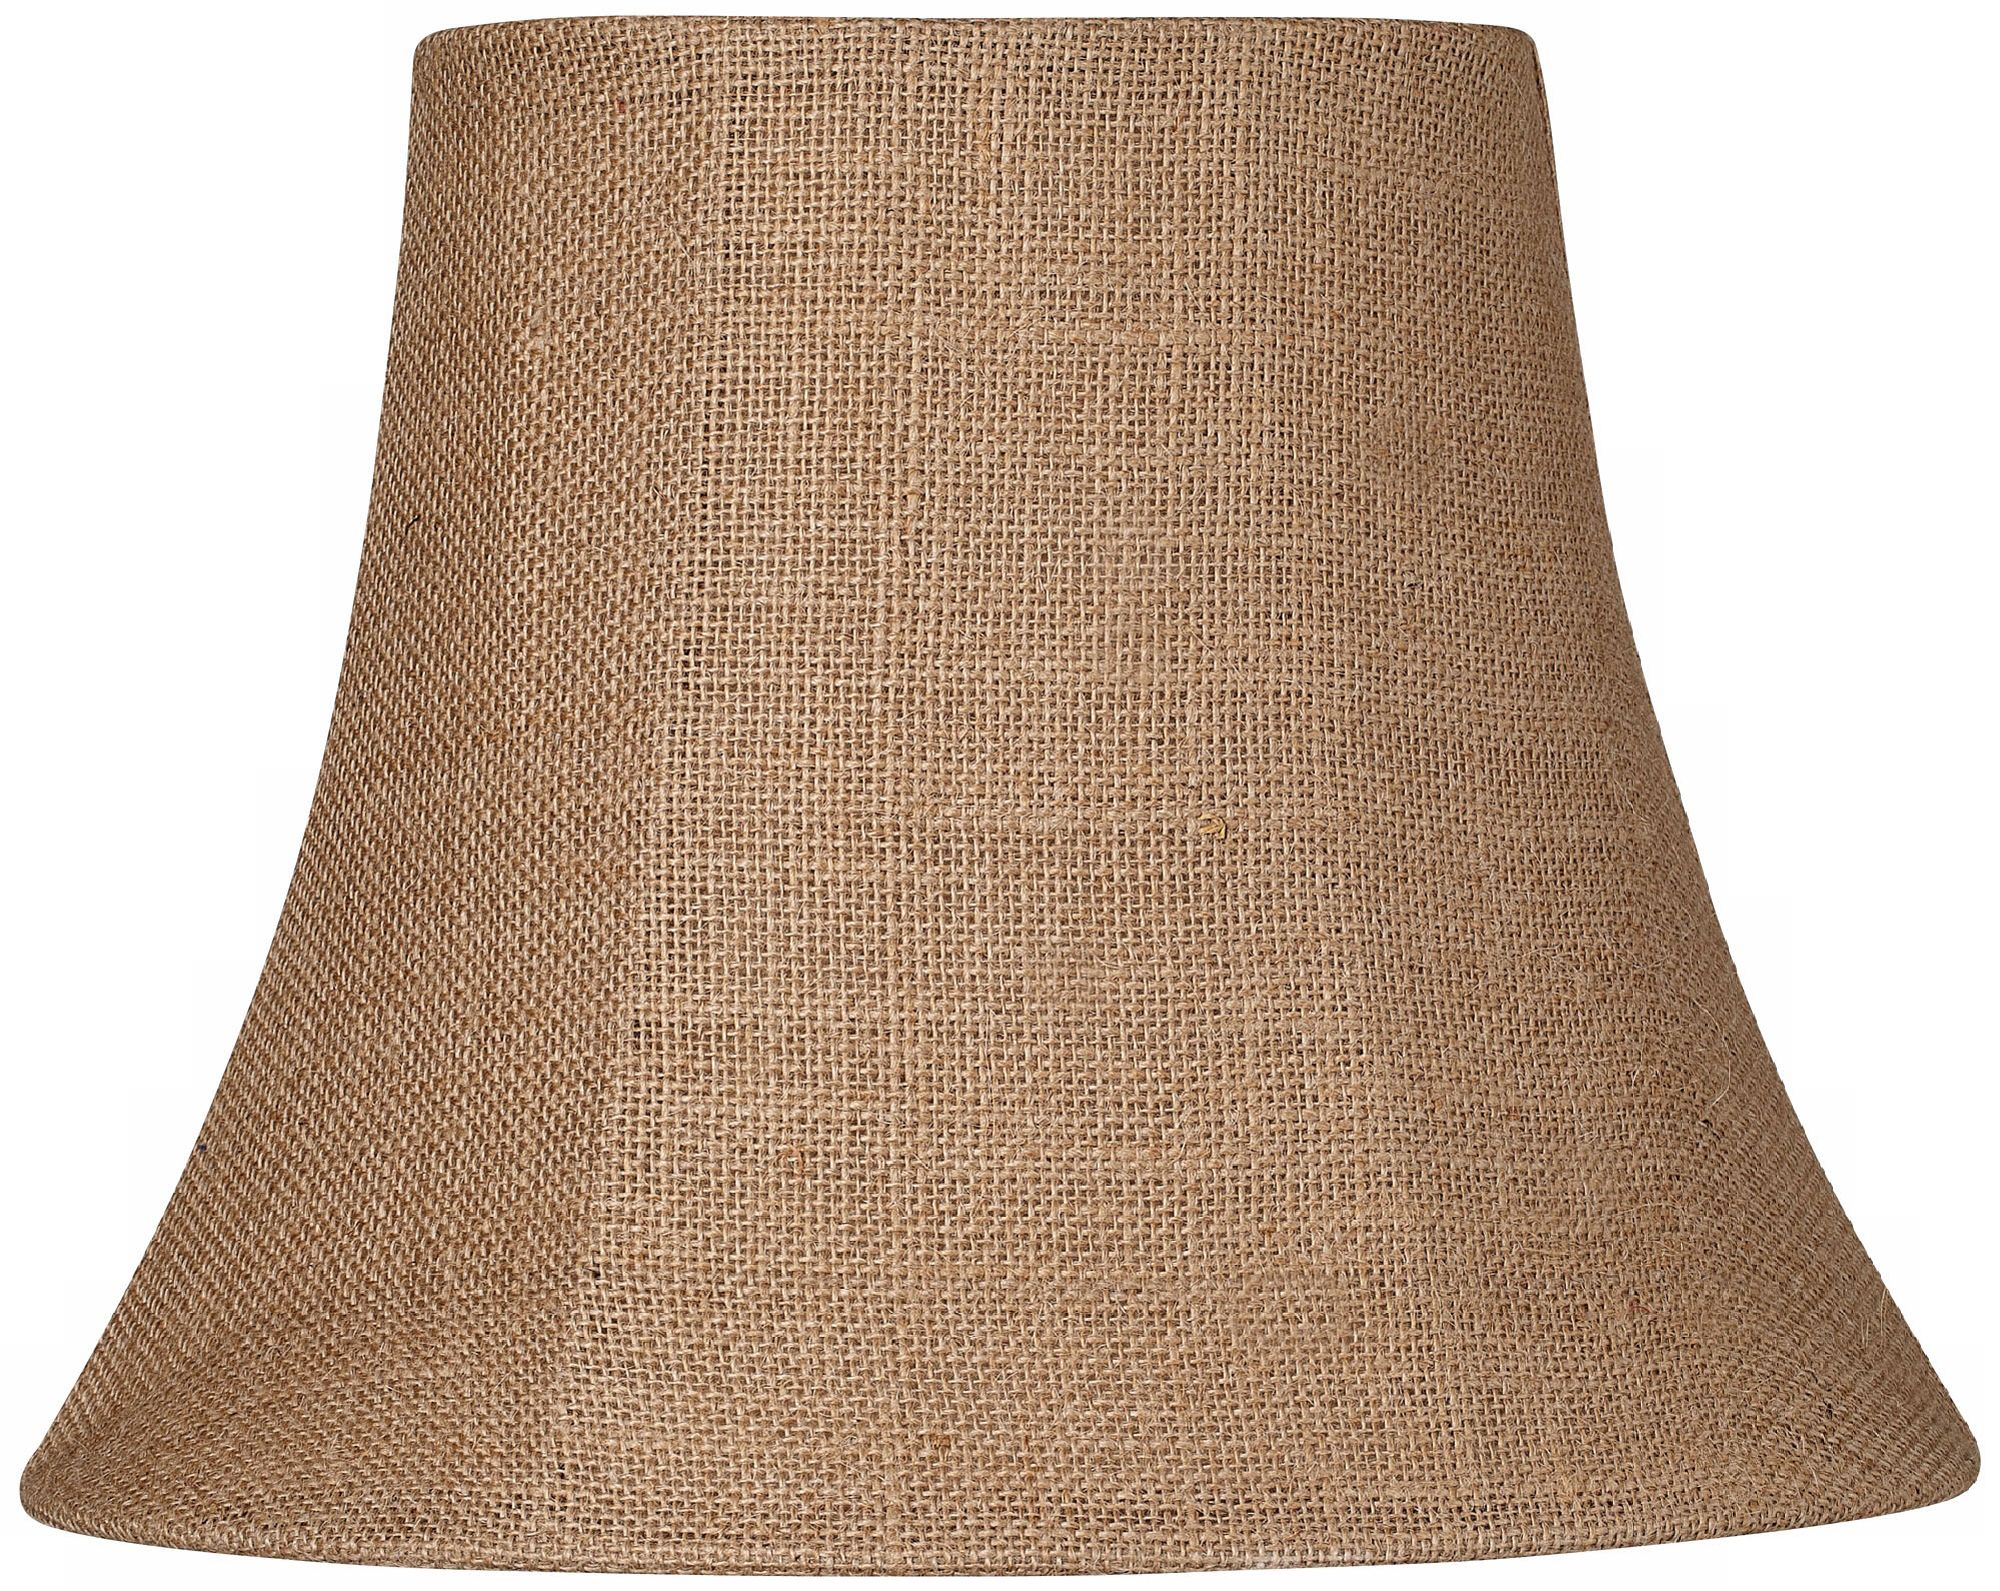 natural burlap small oval lamp shade 68x1114x11 spider